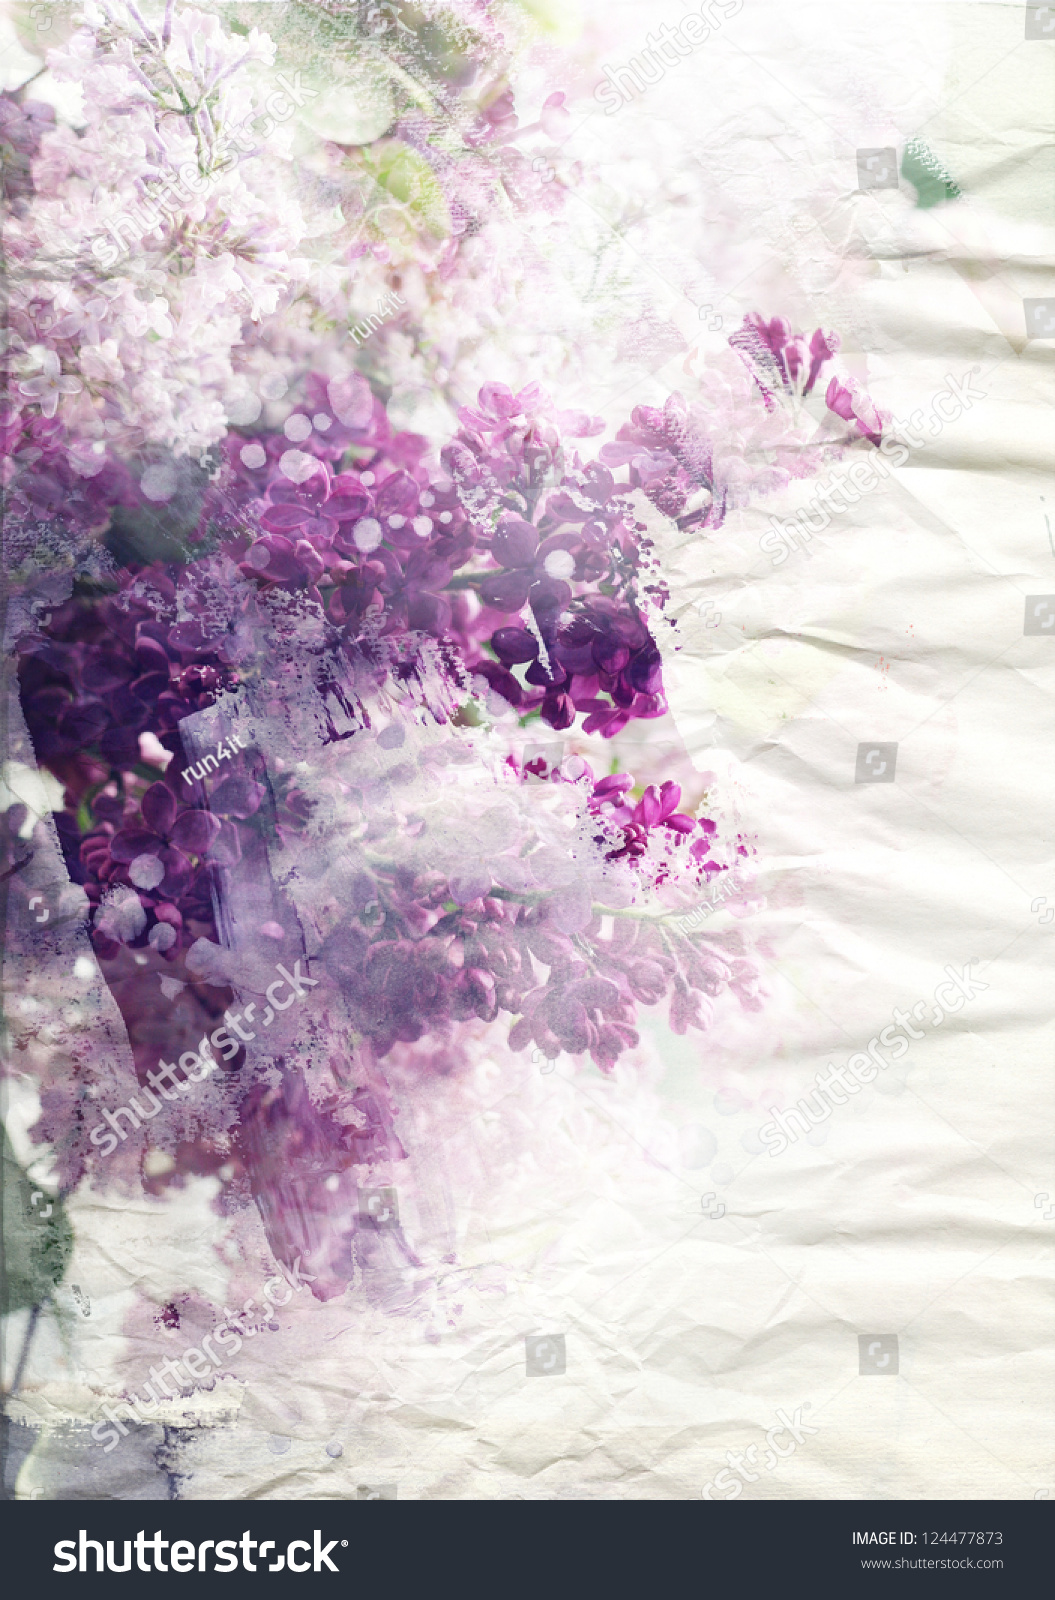 Royalty Free Stock Illustration Of Lilac Flowers On Paper Texture